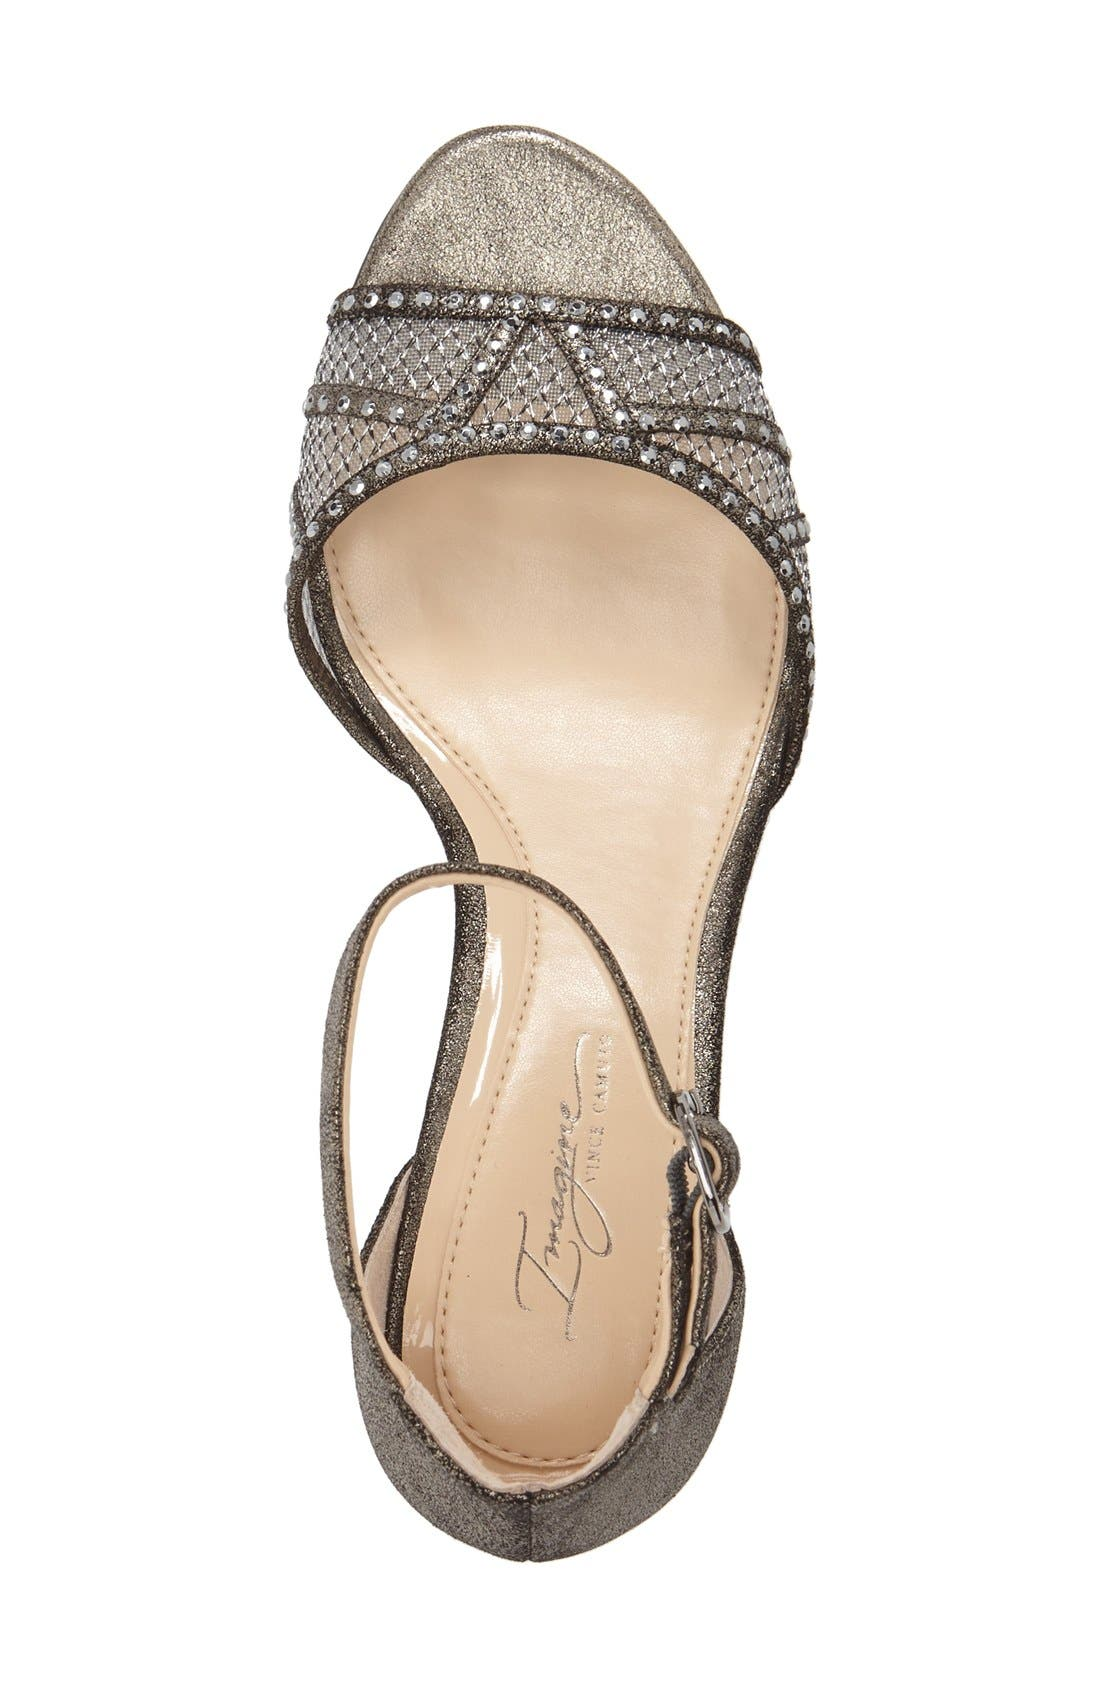 'Joan' Studded Wedge Sandal,                             Alternate thumbnail 3, color,                             Anthracite Suede